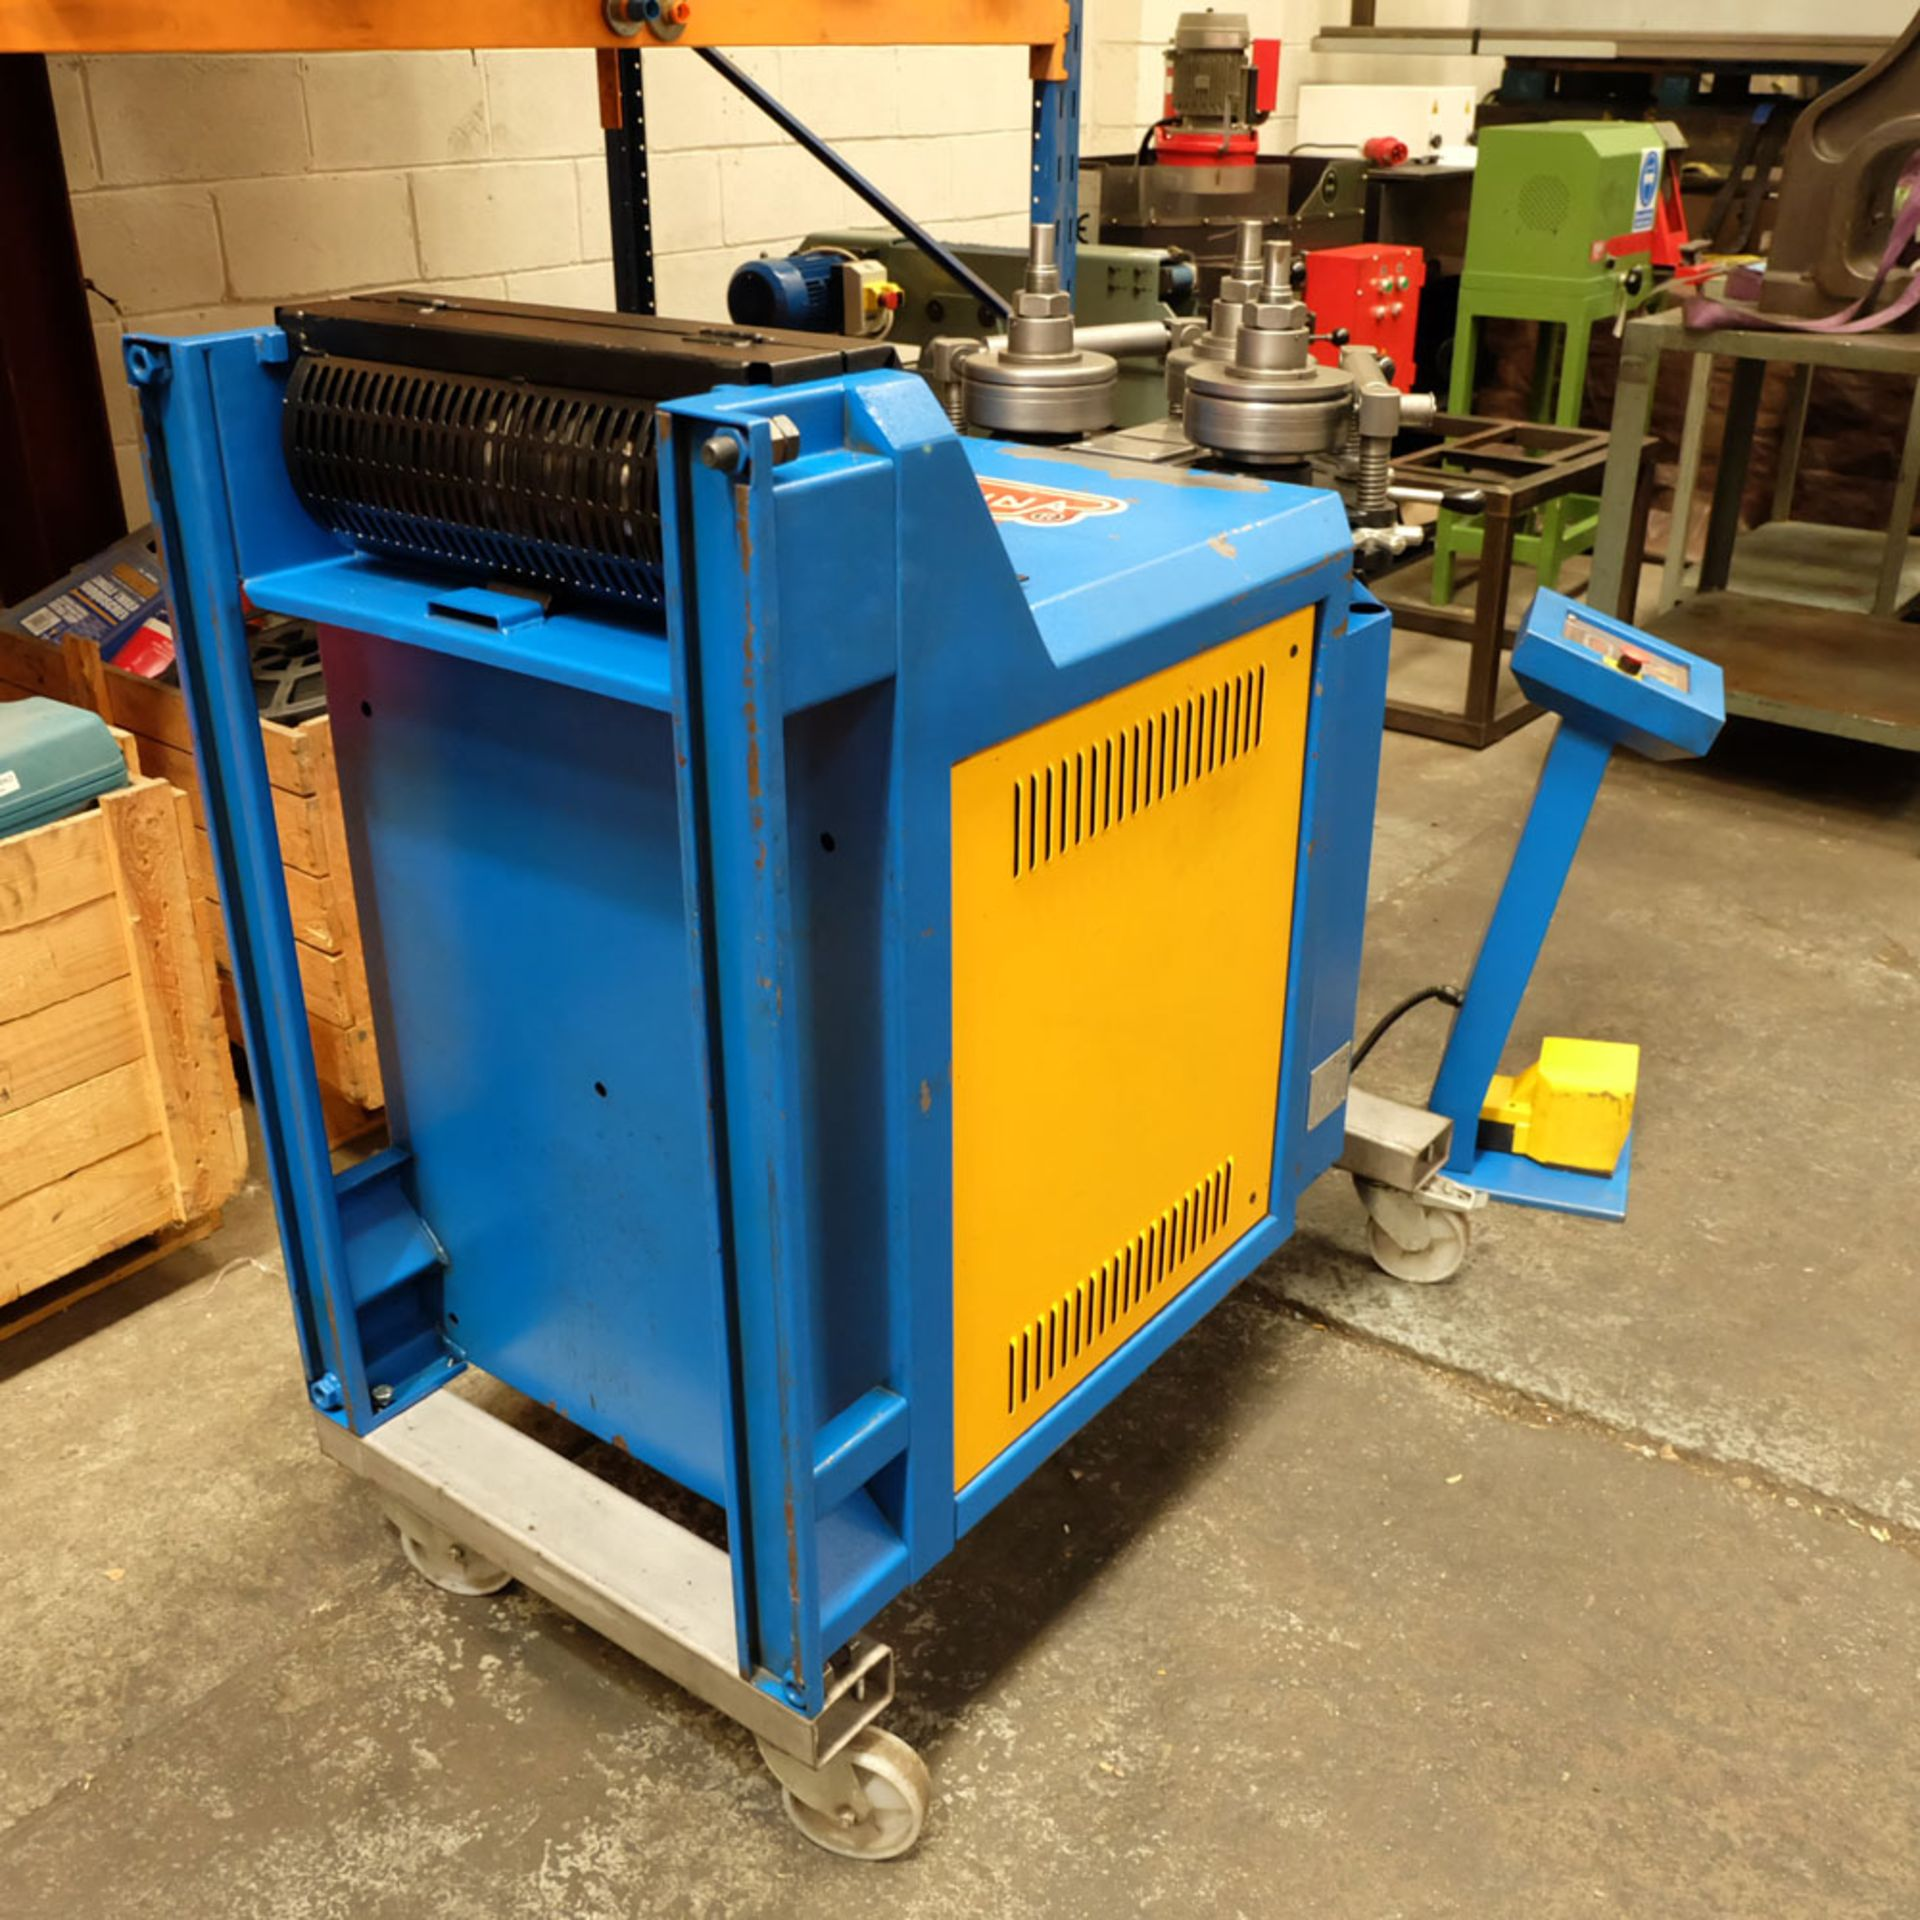 Ercolina CE40MR3 - Ring rollers. Horizontal/Vertical. Roll Shaft Diameter 40mm. - Image 7 of 14